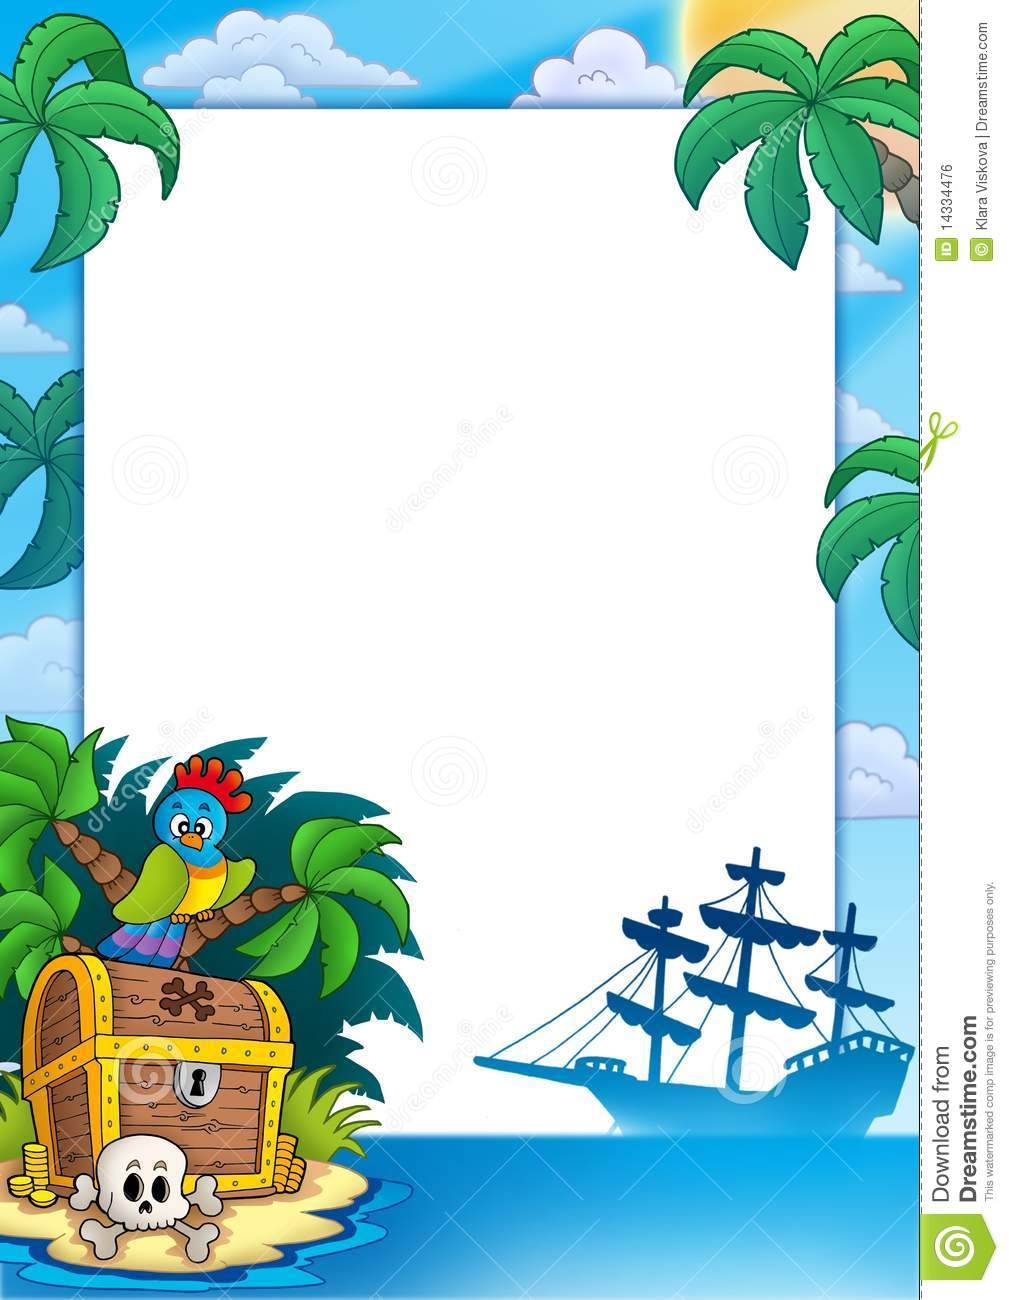 pirate frame with treasure island royalty free stock image free pirate treasure chest clipart Pirate Chest Clip Art